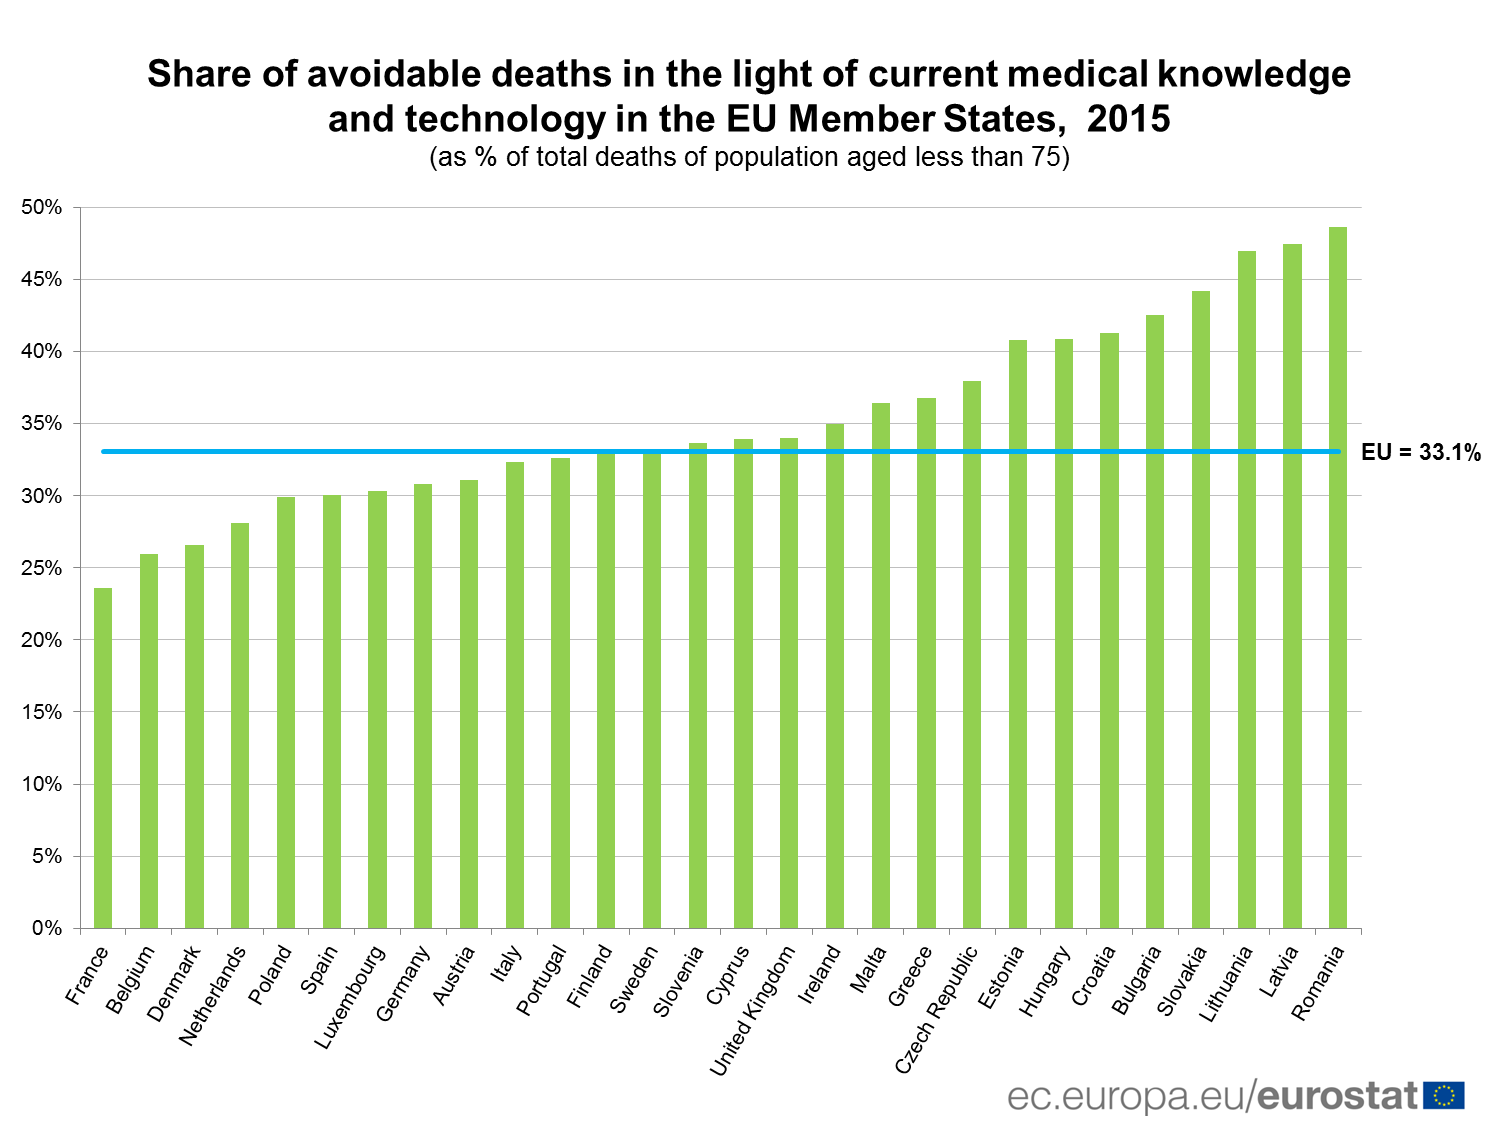 Share of avoidable deaths, 2015